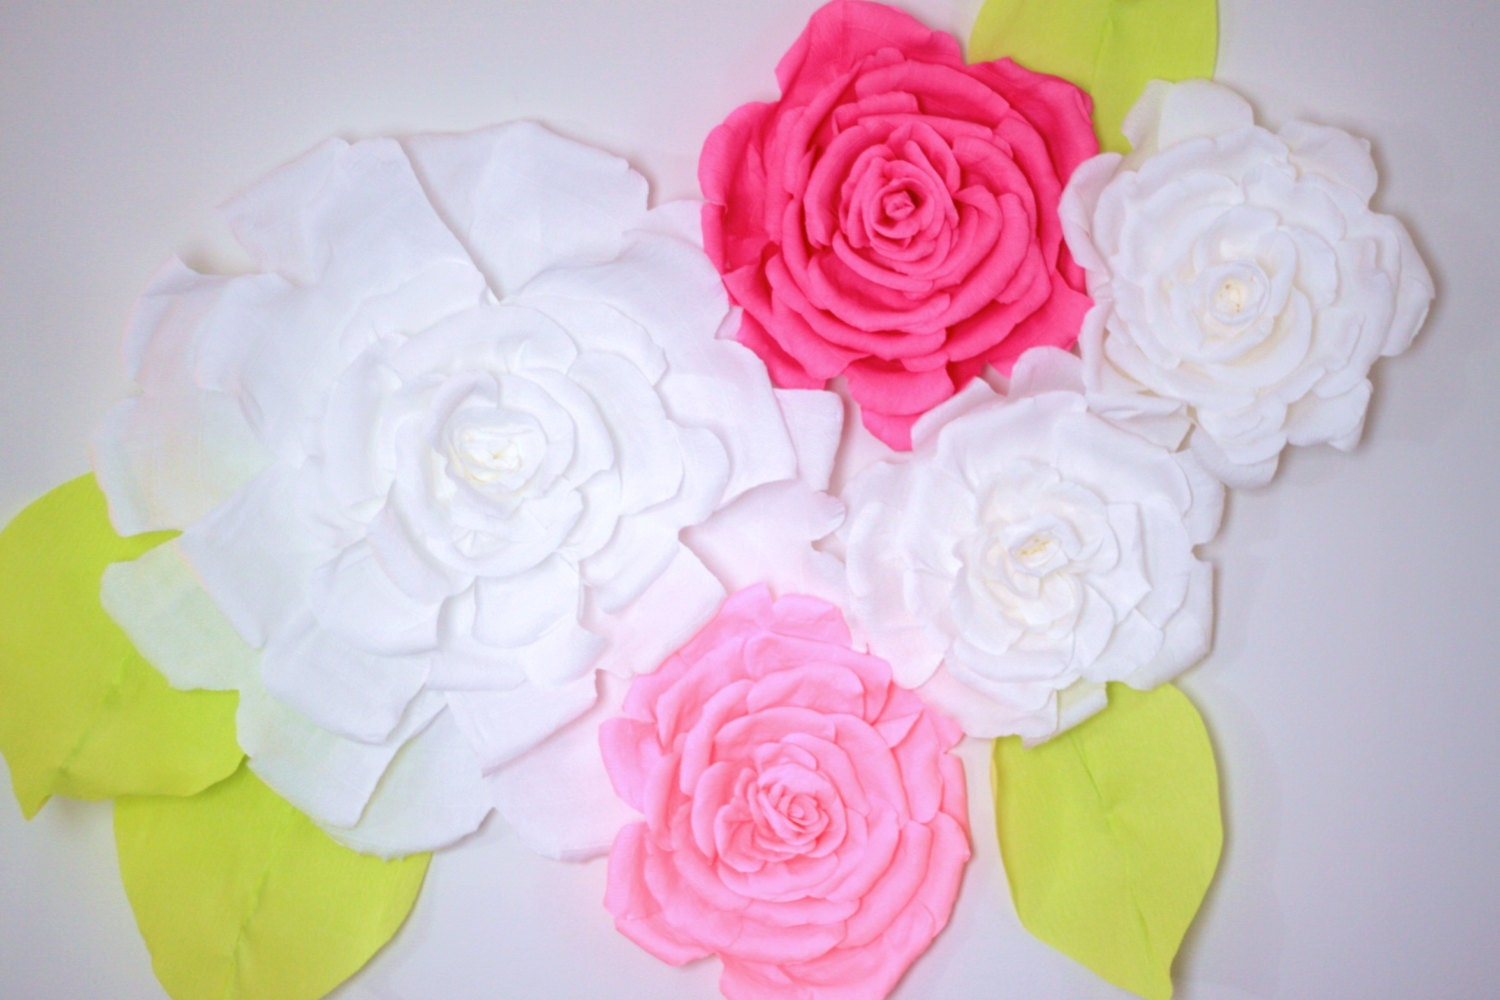 giant paper flower wall display  nursery decor 4ft x 3 ft